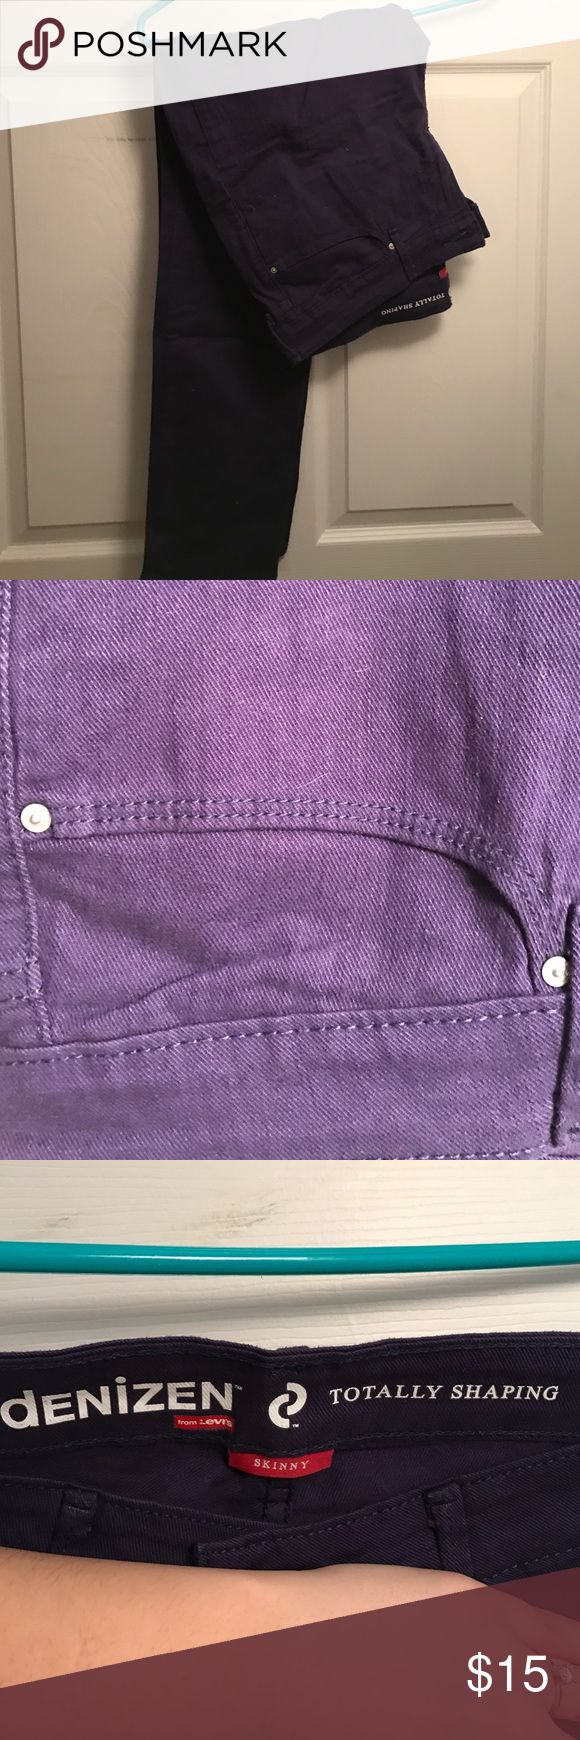 Purple skinny jeans Purple skinny jeans. Never worn, no tags Levi's Jeans Skinny